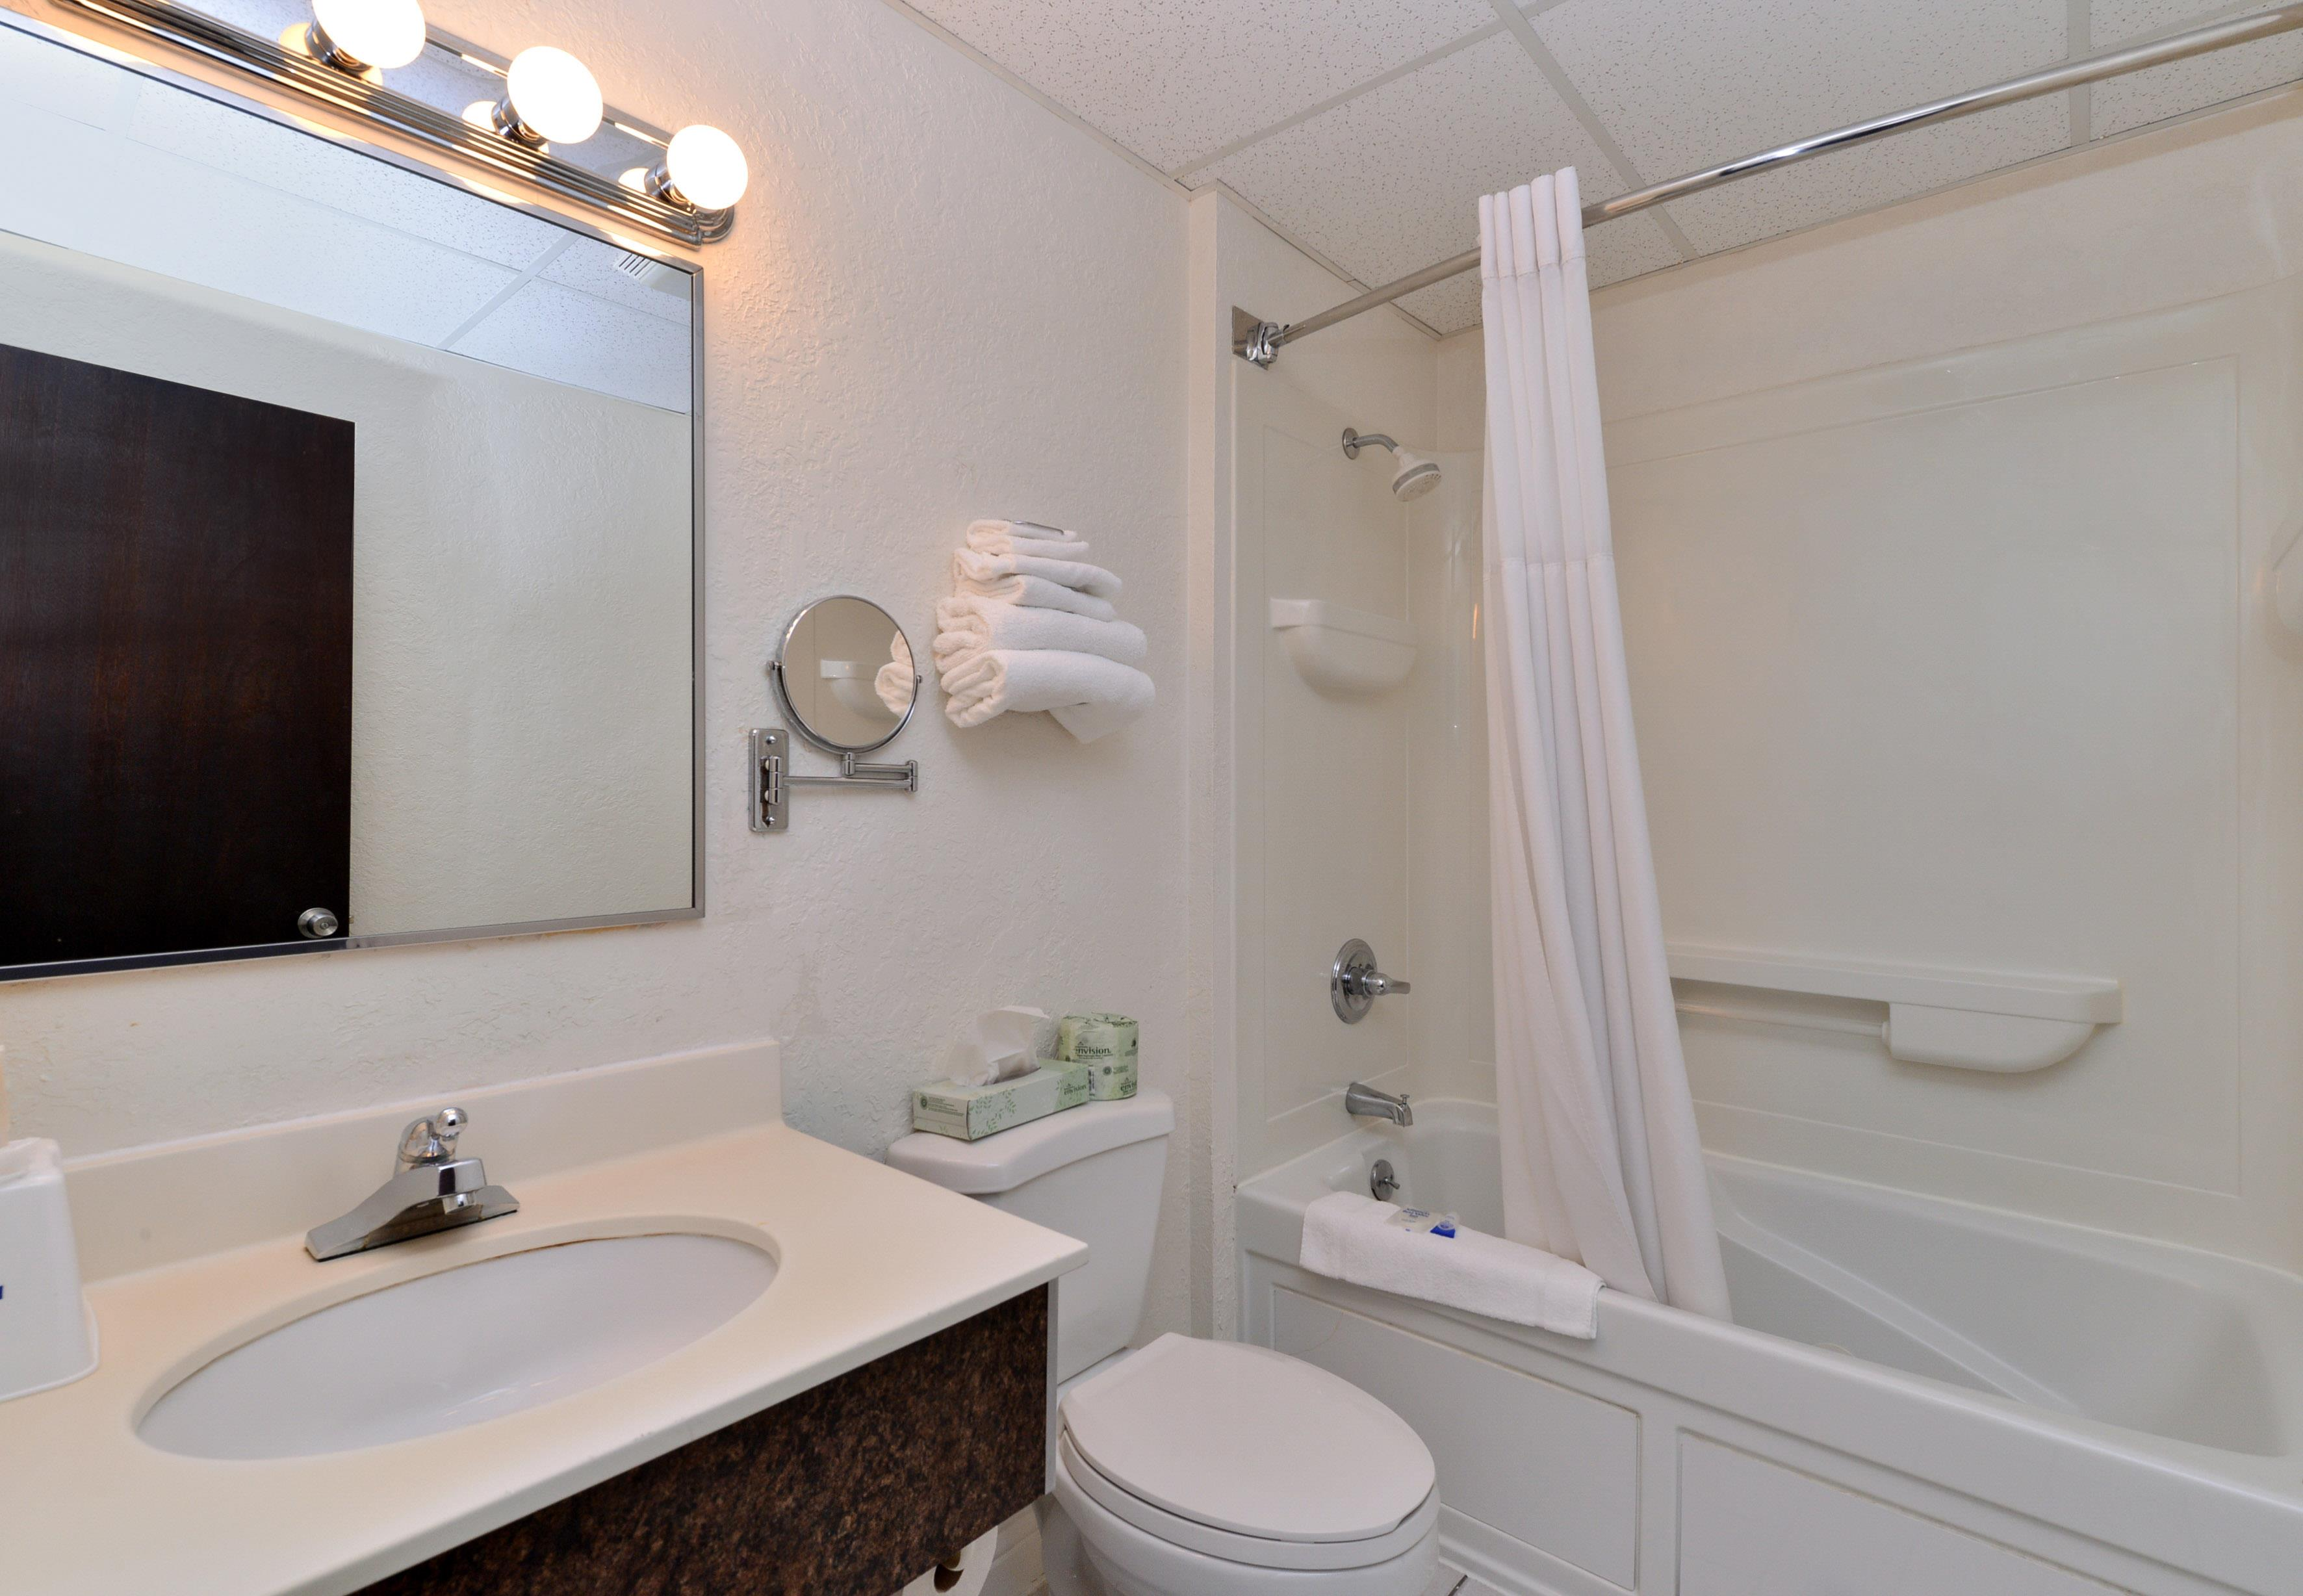 Americas Best Value Inn - New Paltz image 11